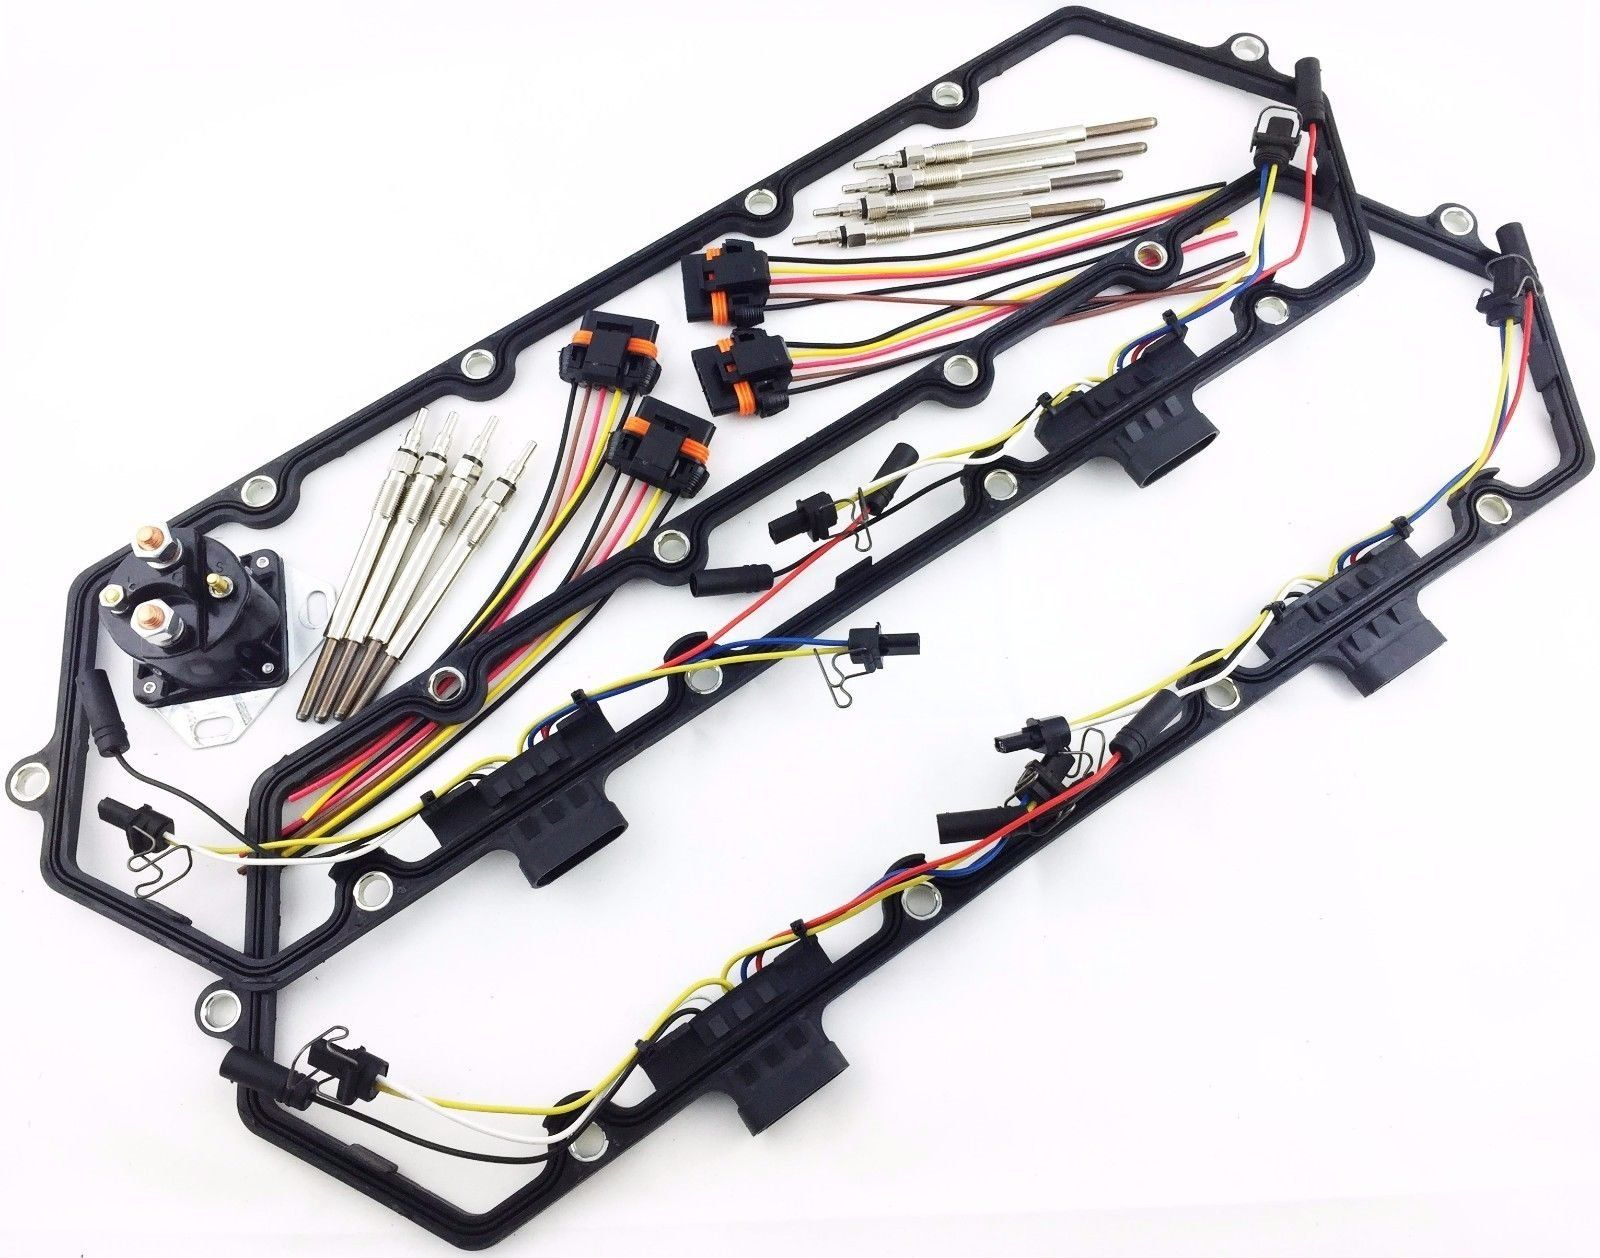 small resolution of 94 97 powerstroke ford 7 3l valve cover gaskets injector glow plug relay harness awesome products selected by anna churchill